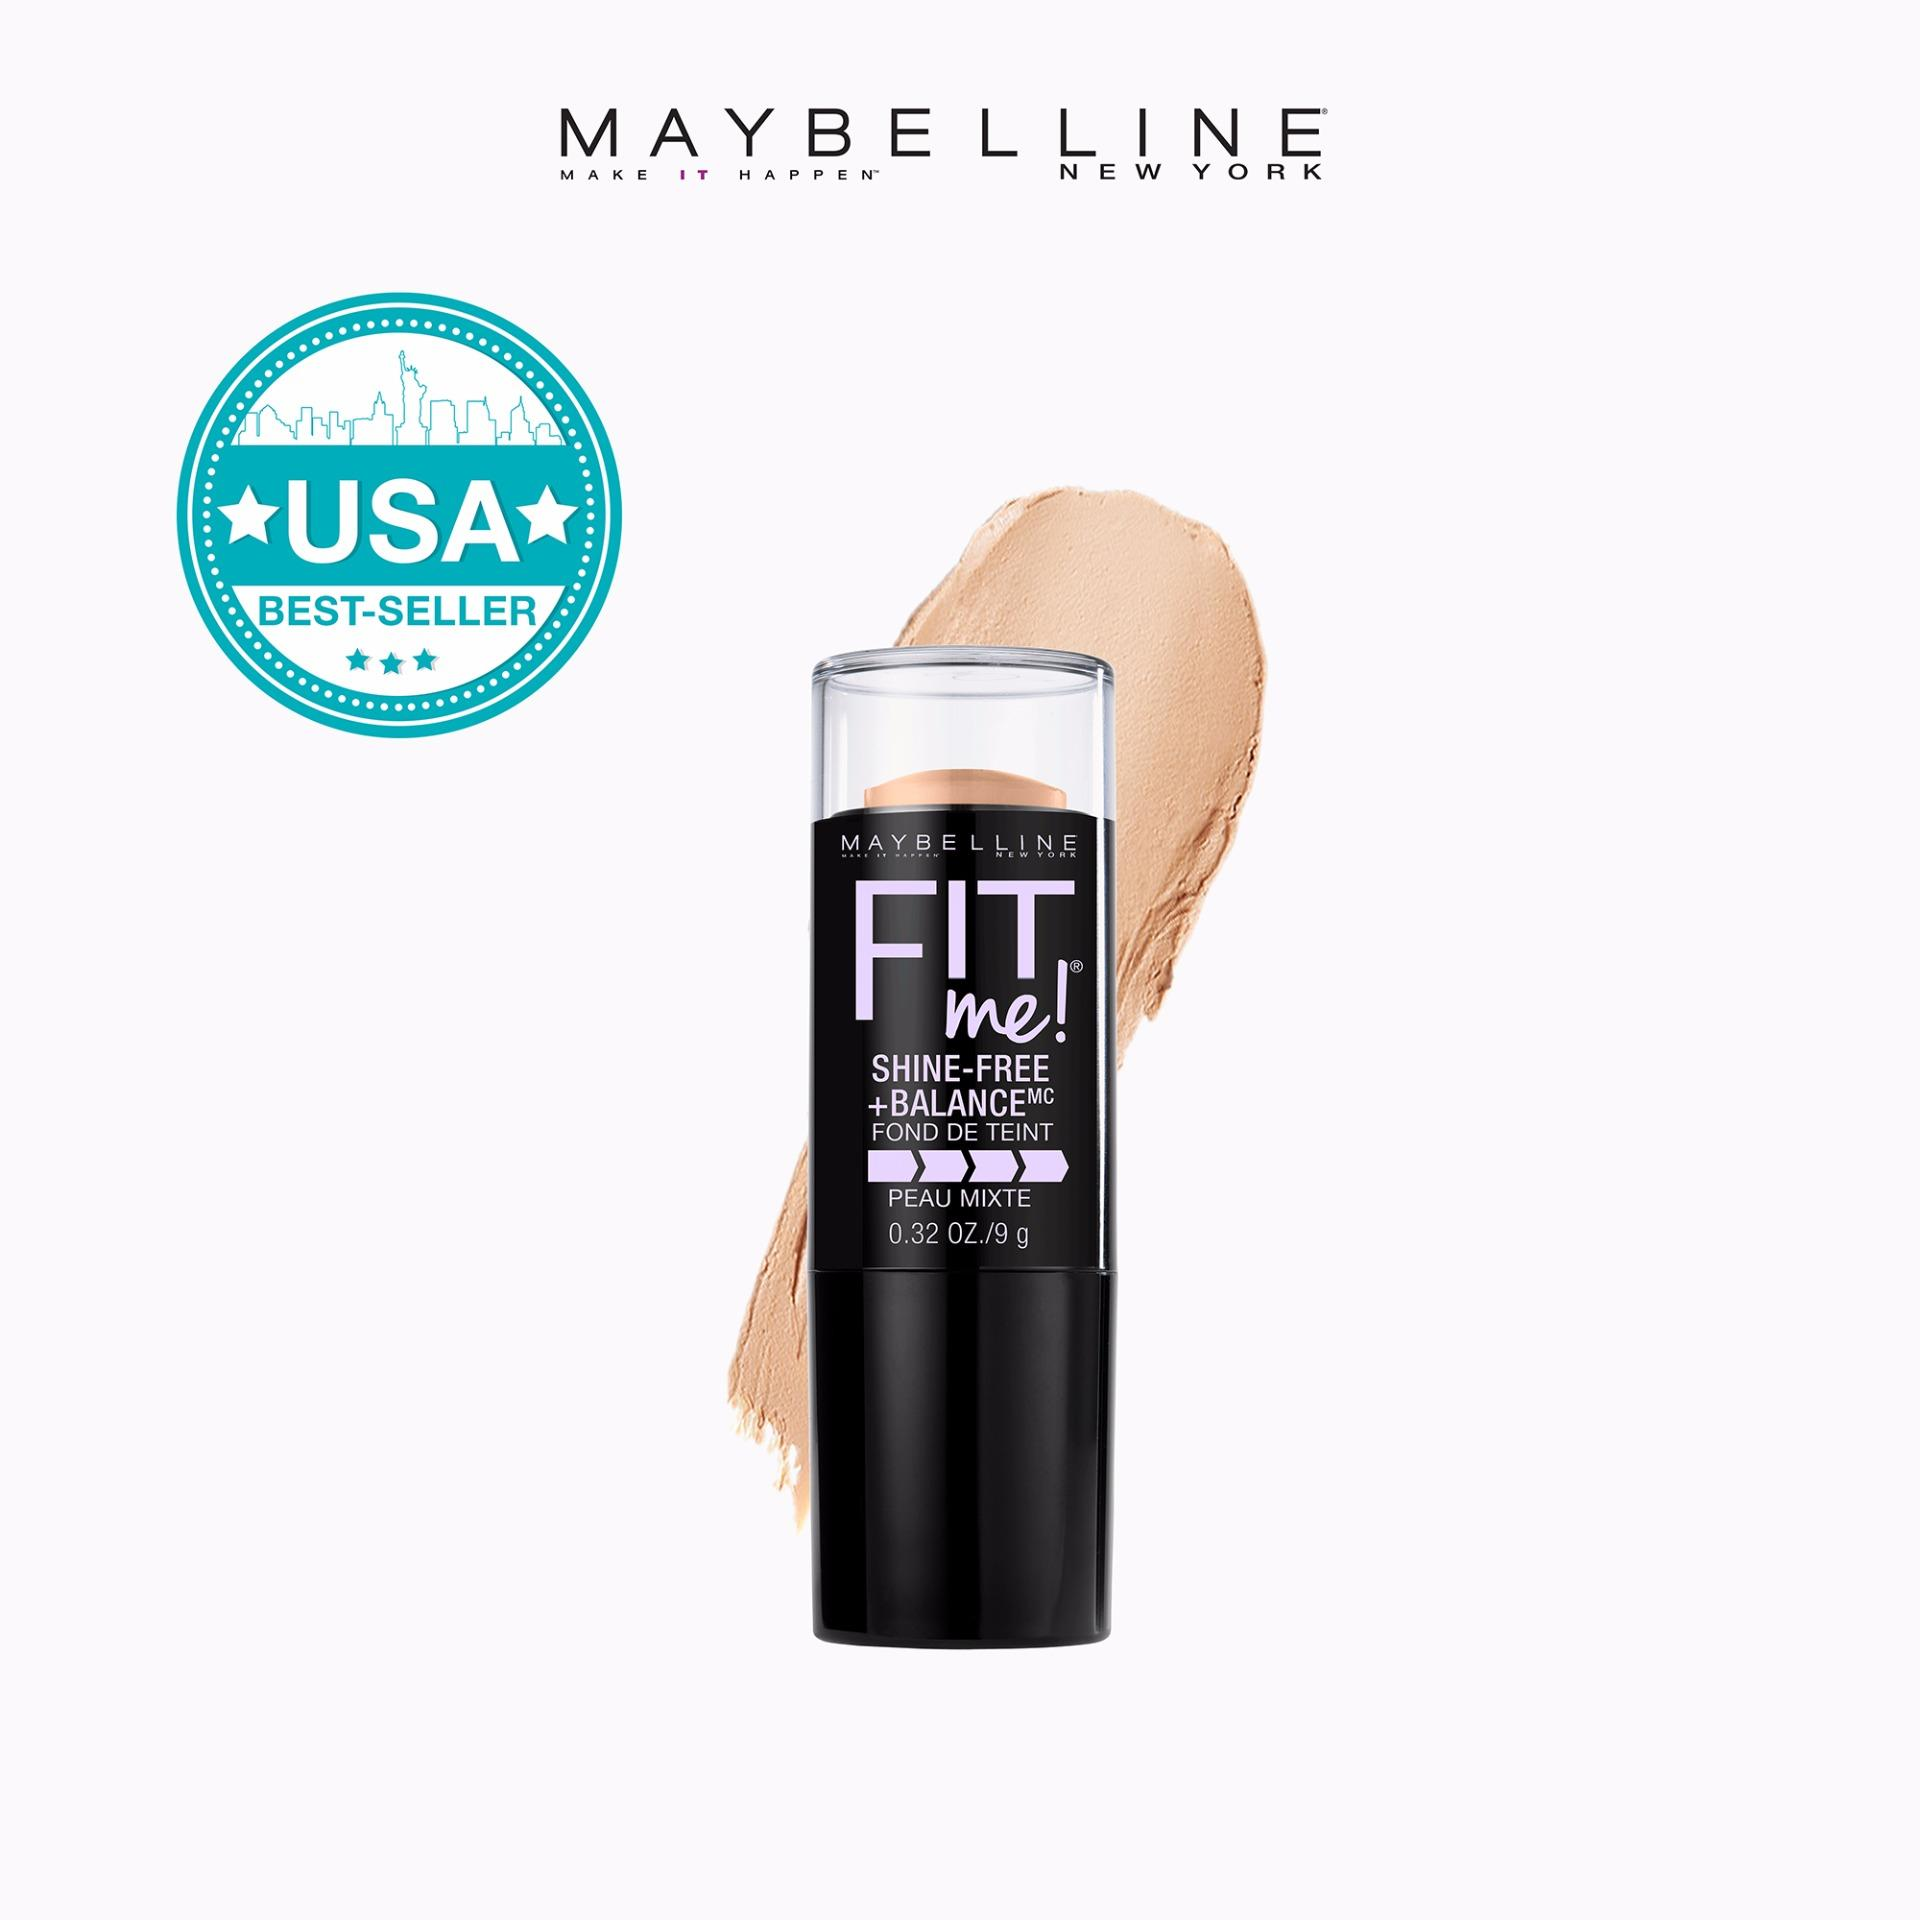 Fit Me Shine-Free Matte Foundation Stick - 120 Classic Ivory [USA Bestseller] by Maybelline Philippines